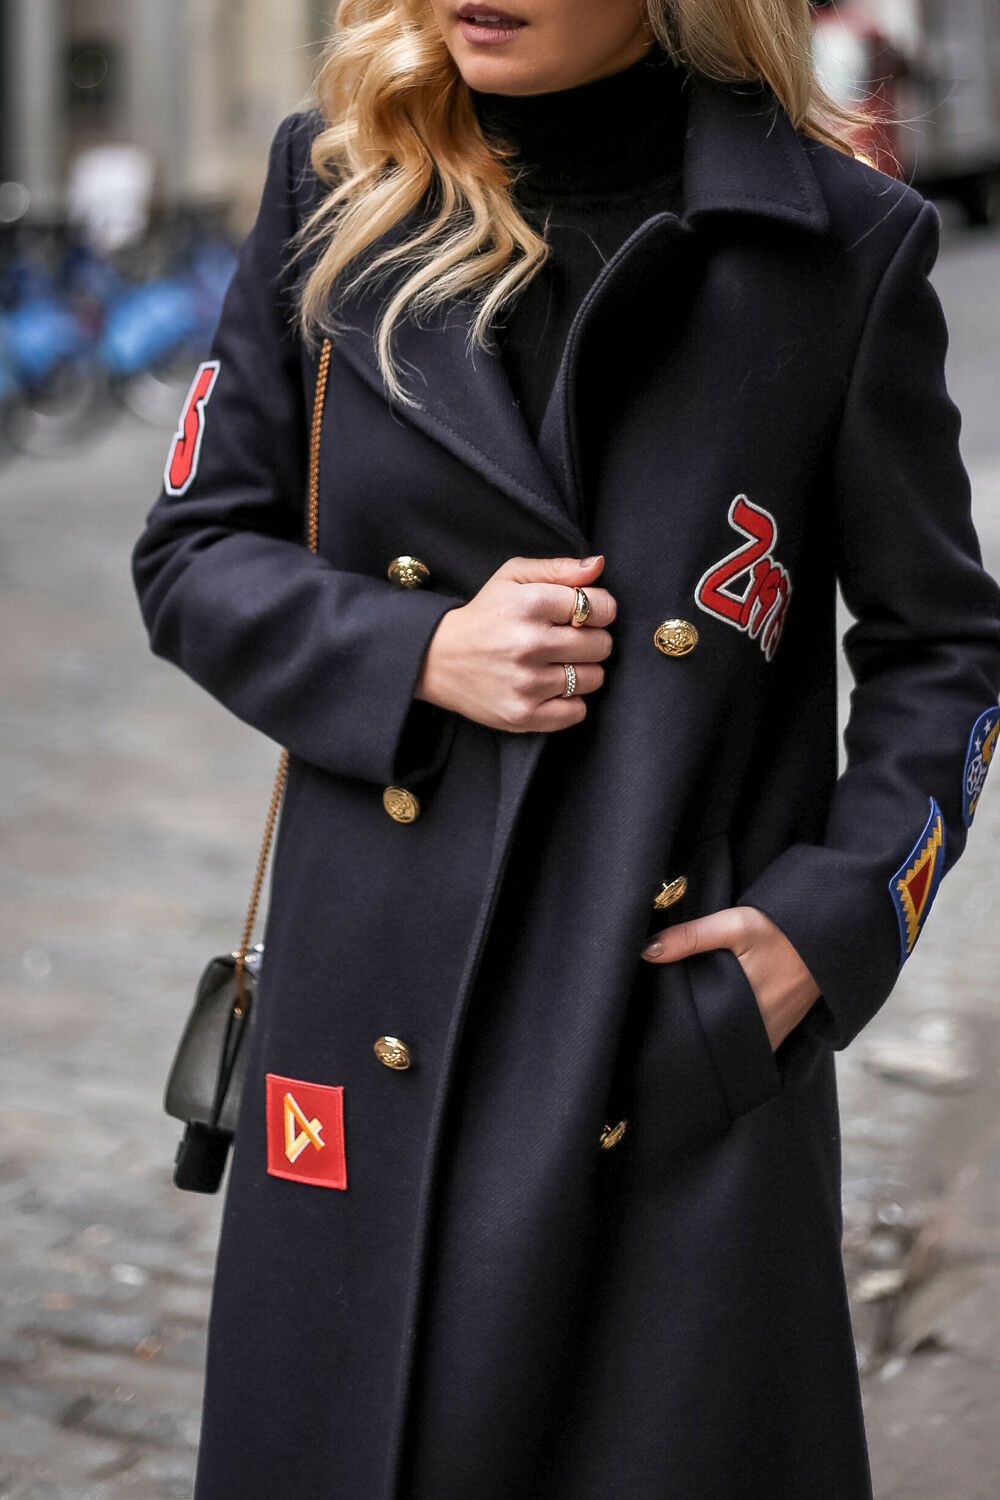 Zara Navy bluee Awesome Military Coat With Patches Bloggers Sold 7656 744 LARGE L